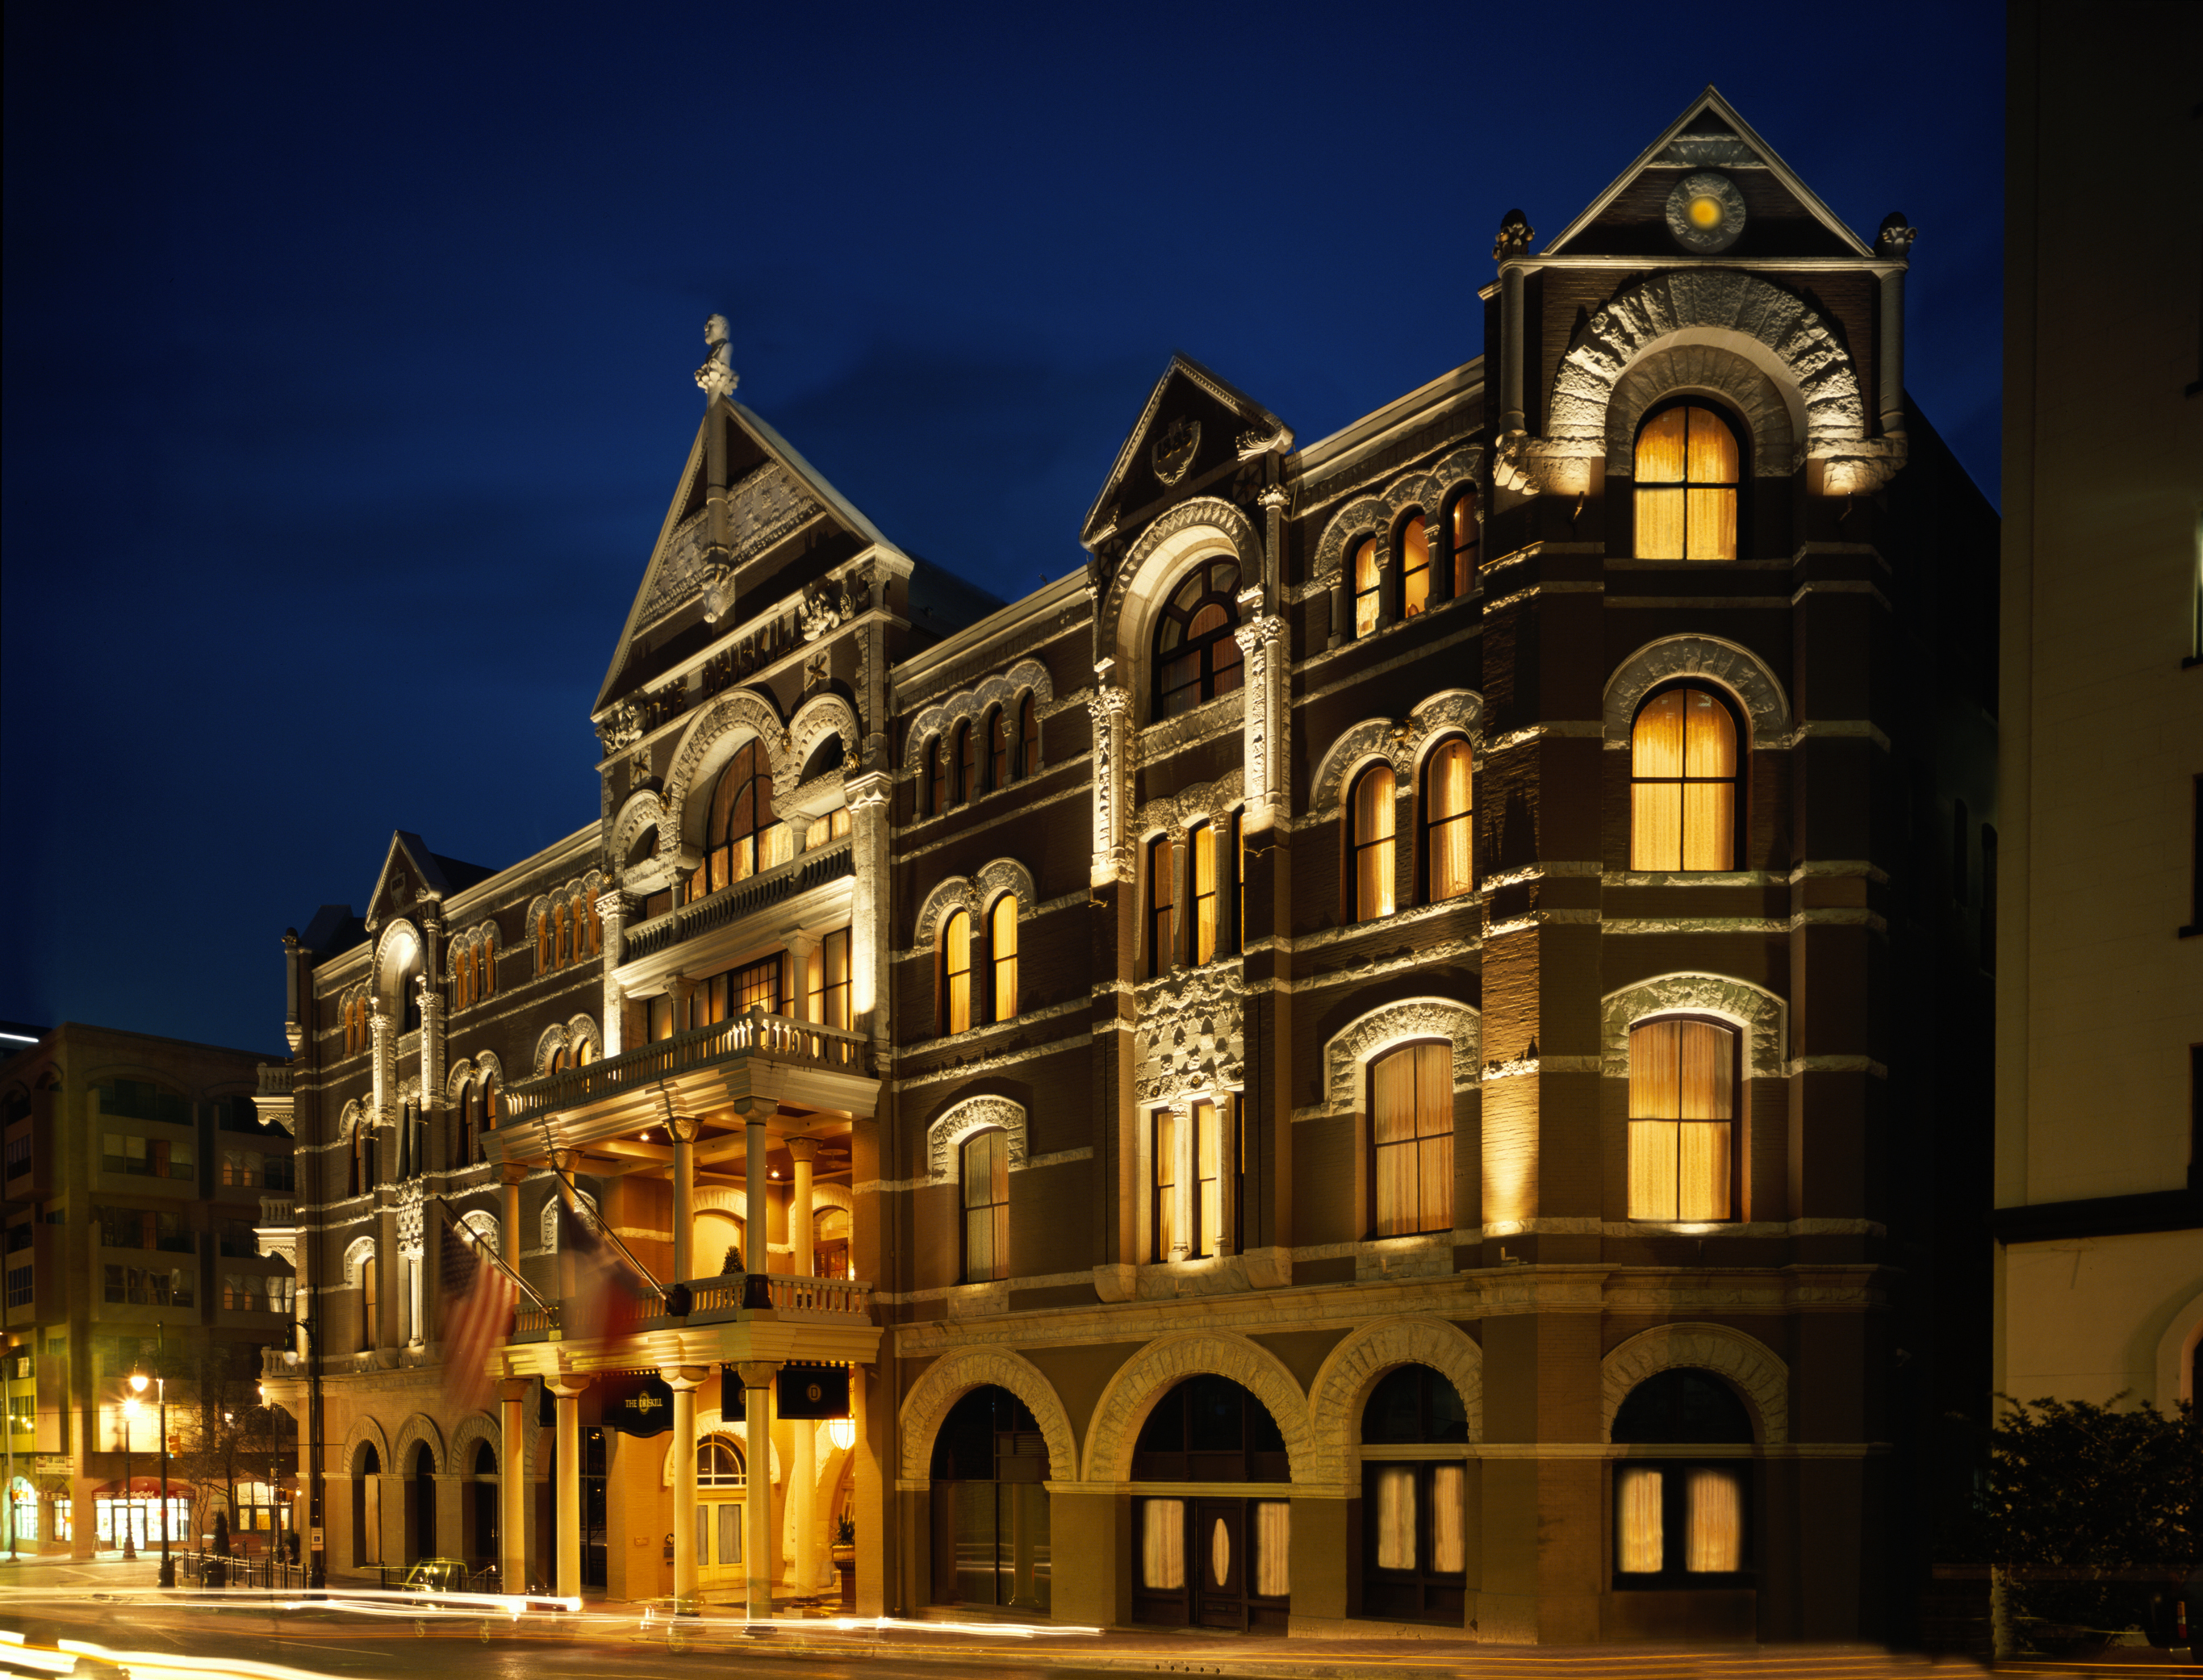 You can really see the Romanesque-style architecture here. Photo courtesy of the Driskill hotel